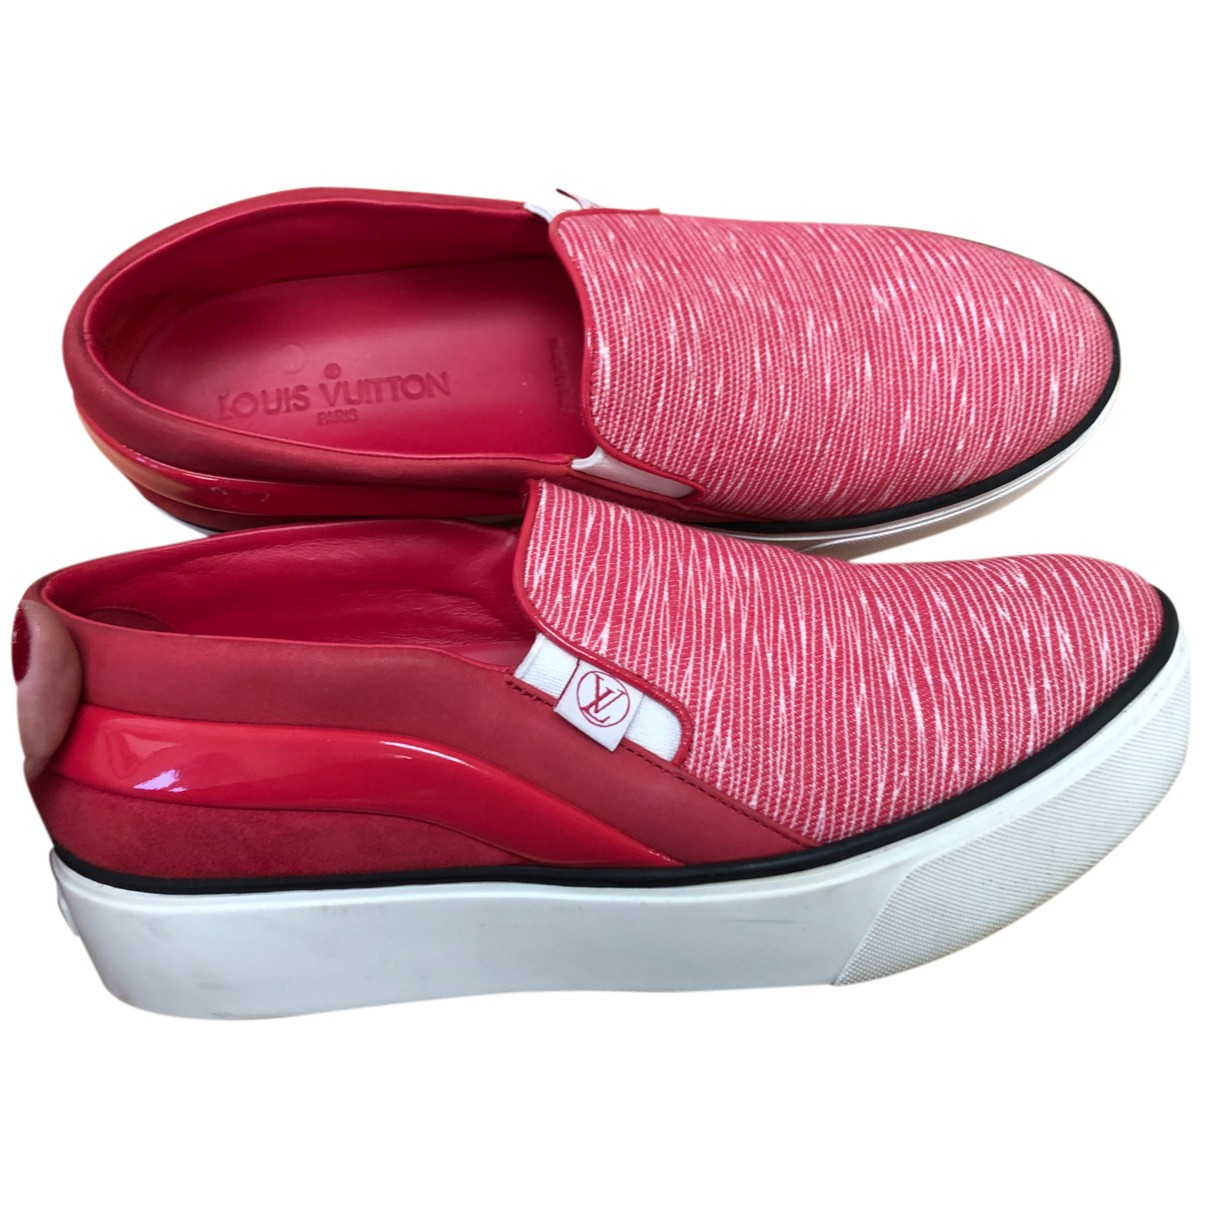 Louis Vuitton \N Espadrilles in  Rot Leder